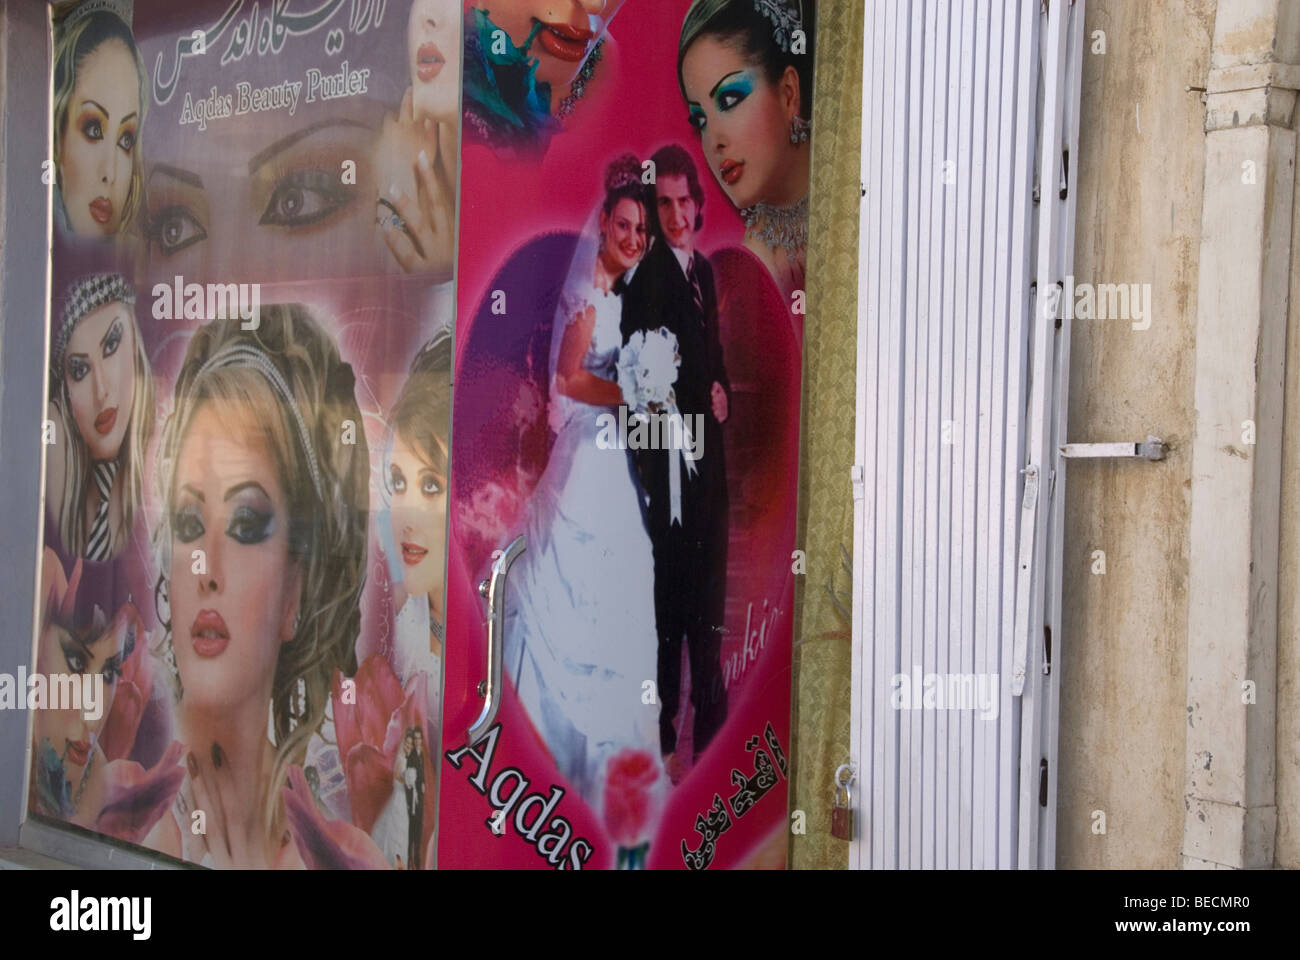 August 2009 Afghanistan. Kabul .Photos of attractive women with make-up outside a beauty salon - Stock Image